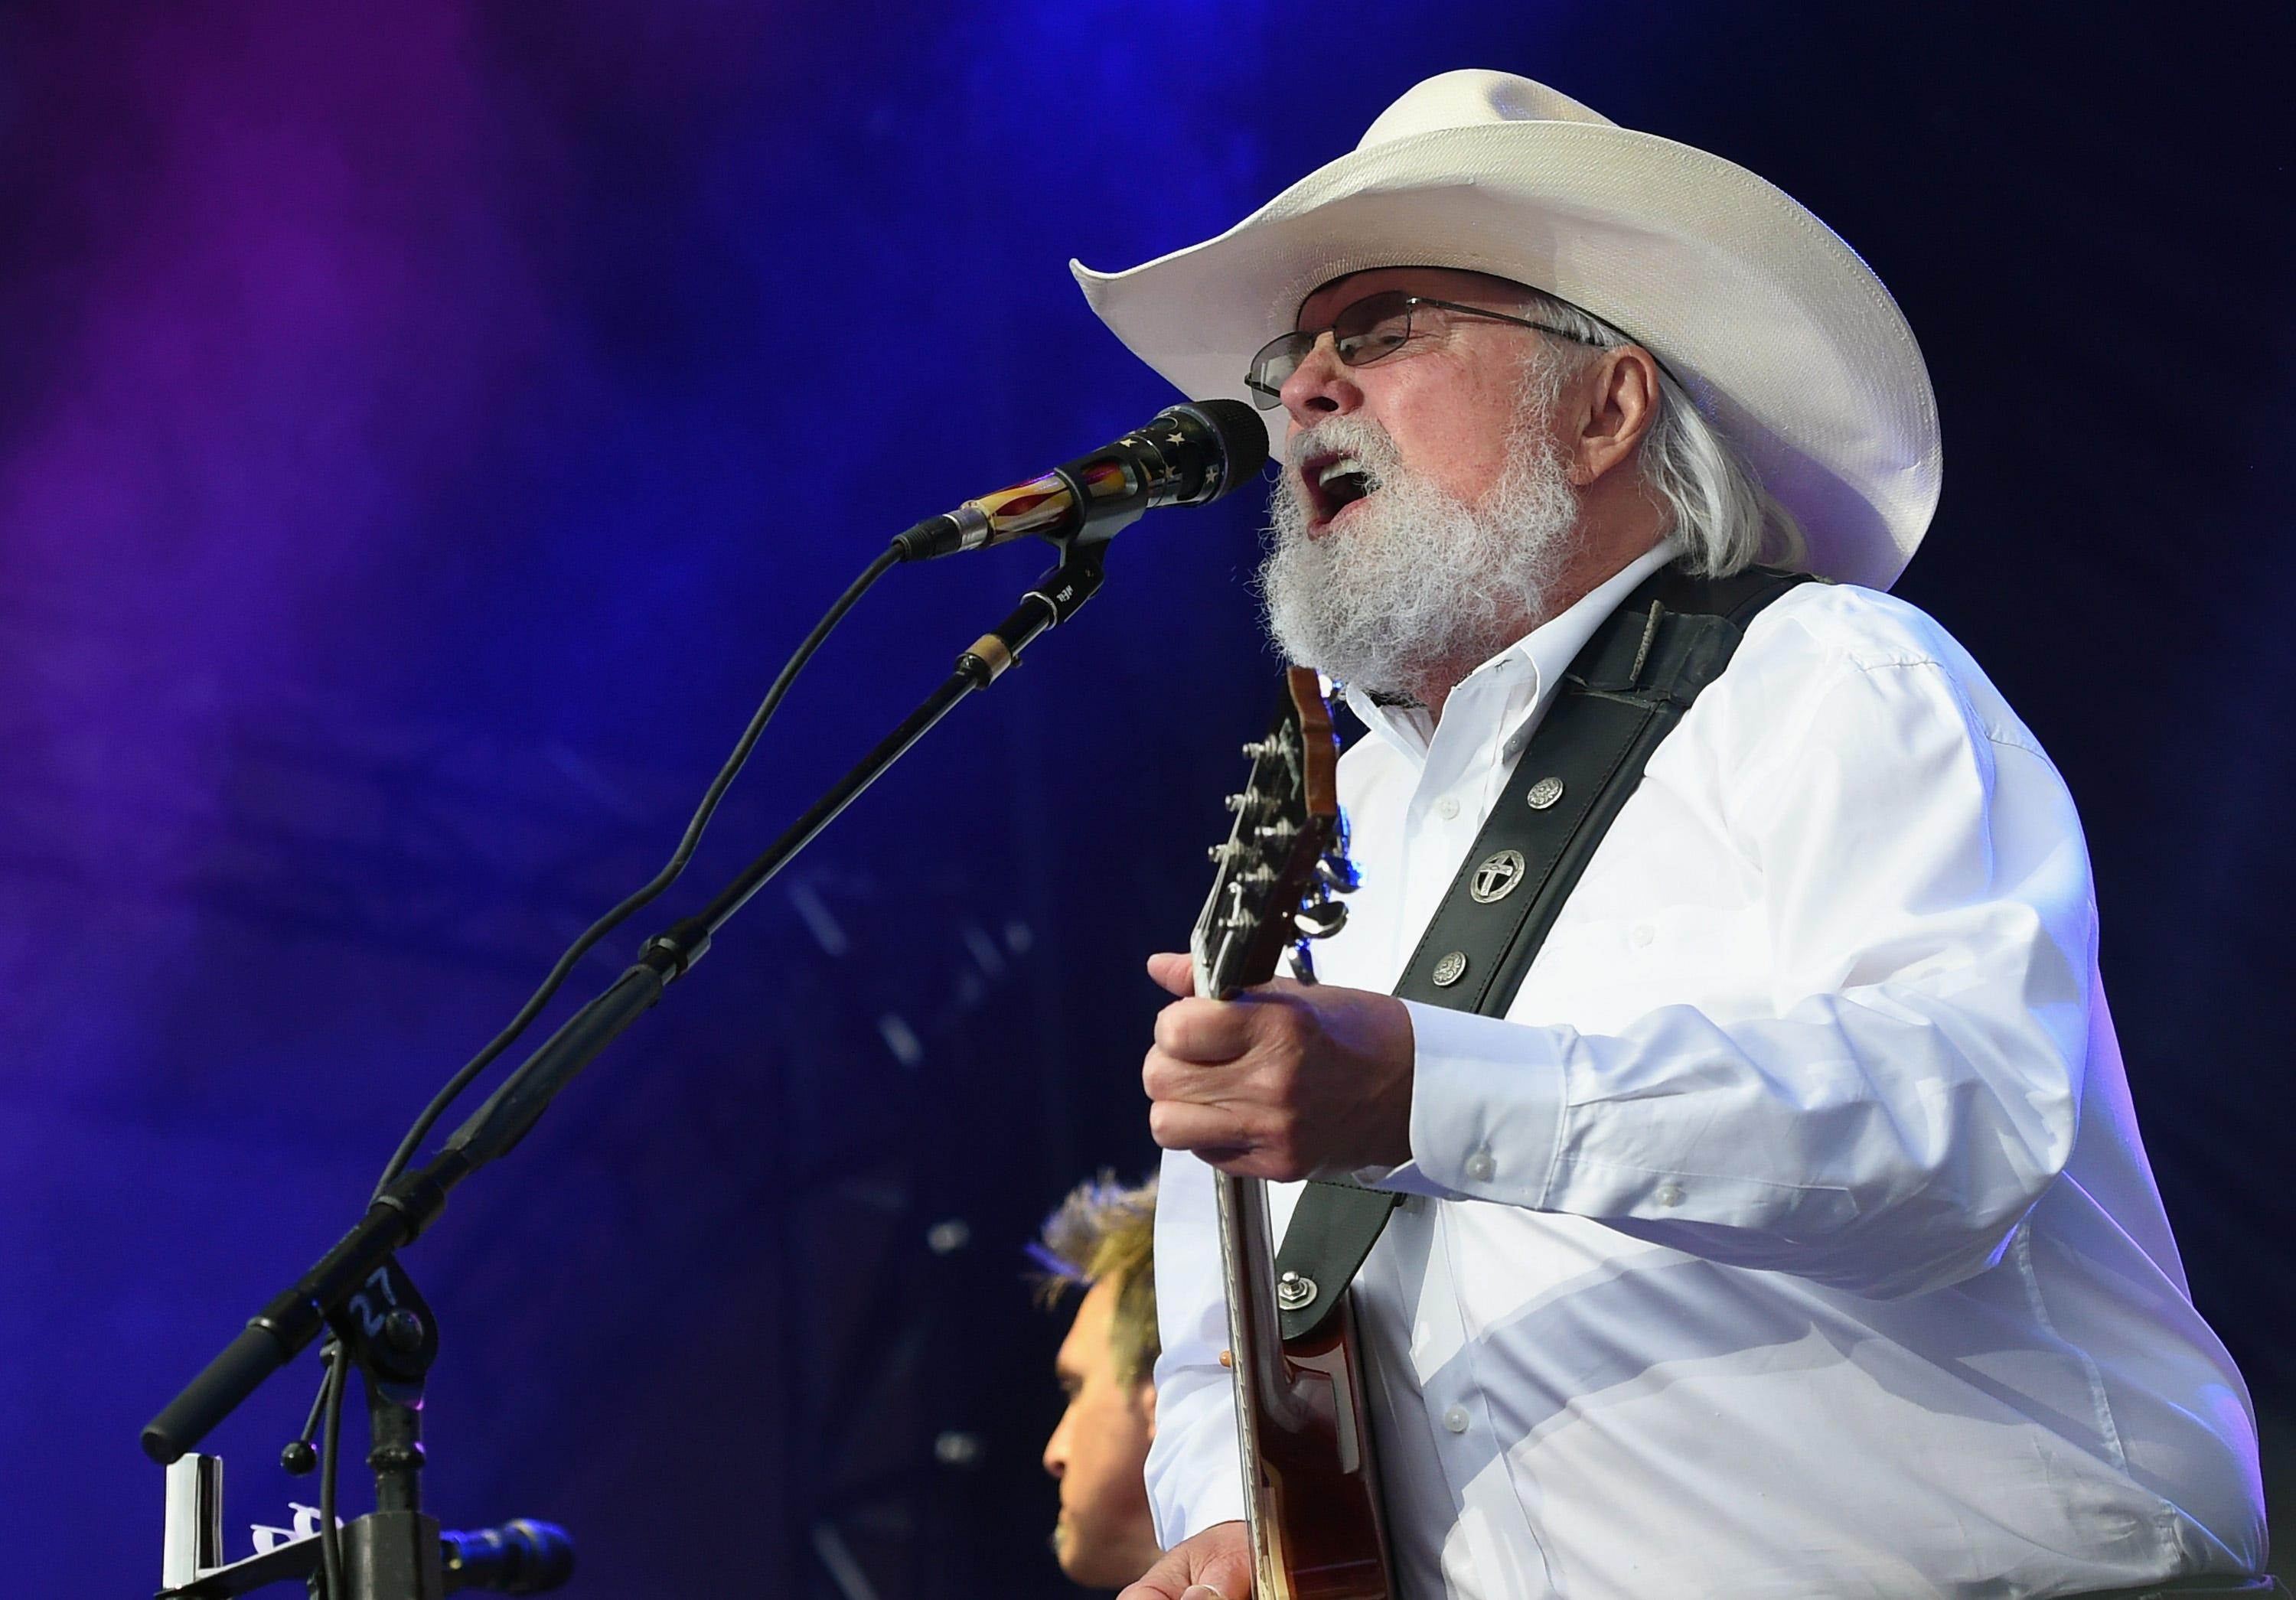 Trump's travels, Nevada's bar closures, Charlie Daniels' funeral: 5 things to know Friday